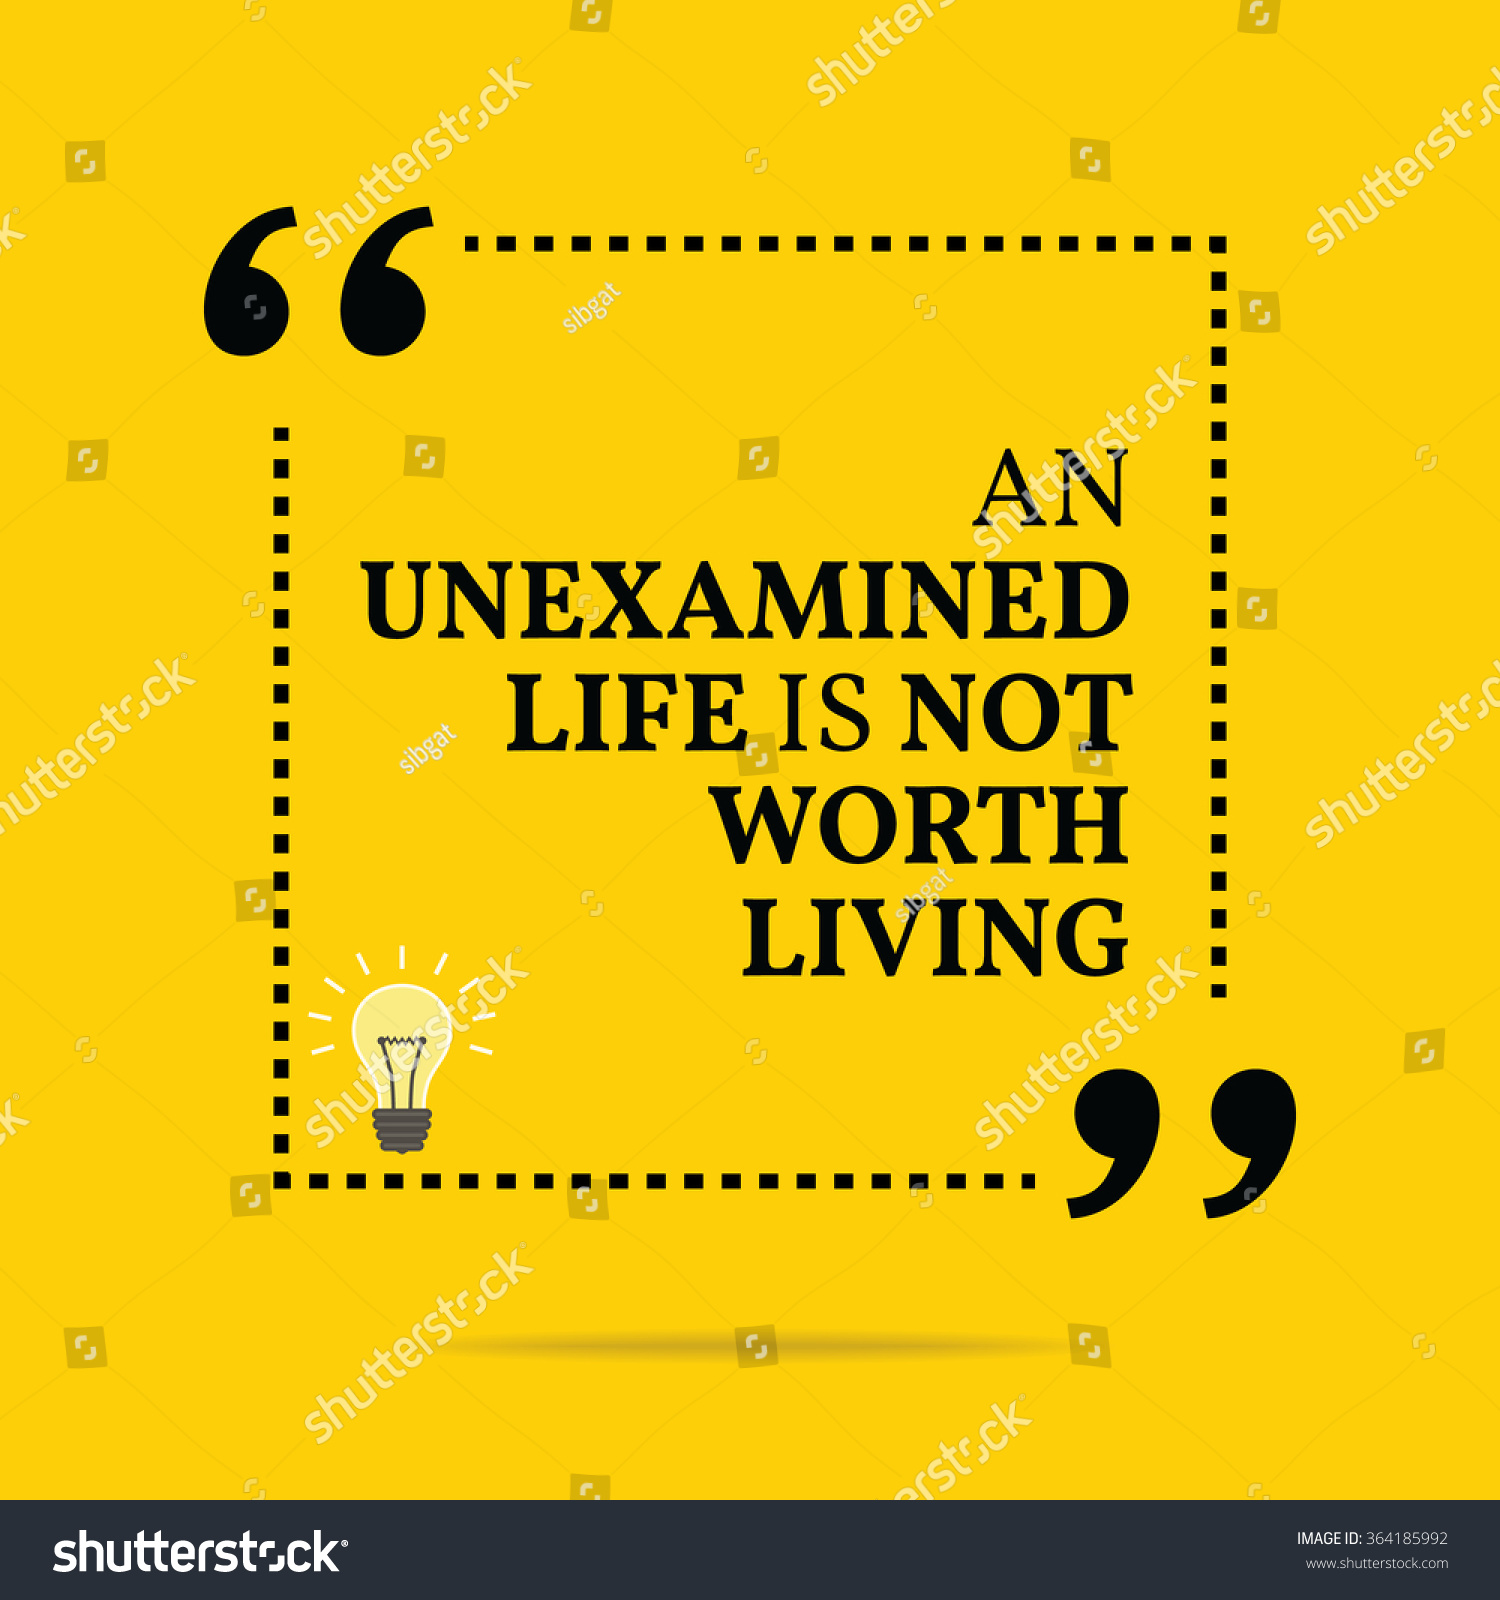 """the unexamined life is not worth living essay """"the unexamined life is not worth living"""" (socrates) the inquiry performed by those endowed with a rational element, consists of attaining."""